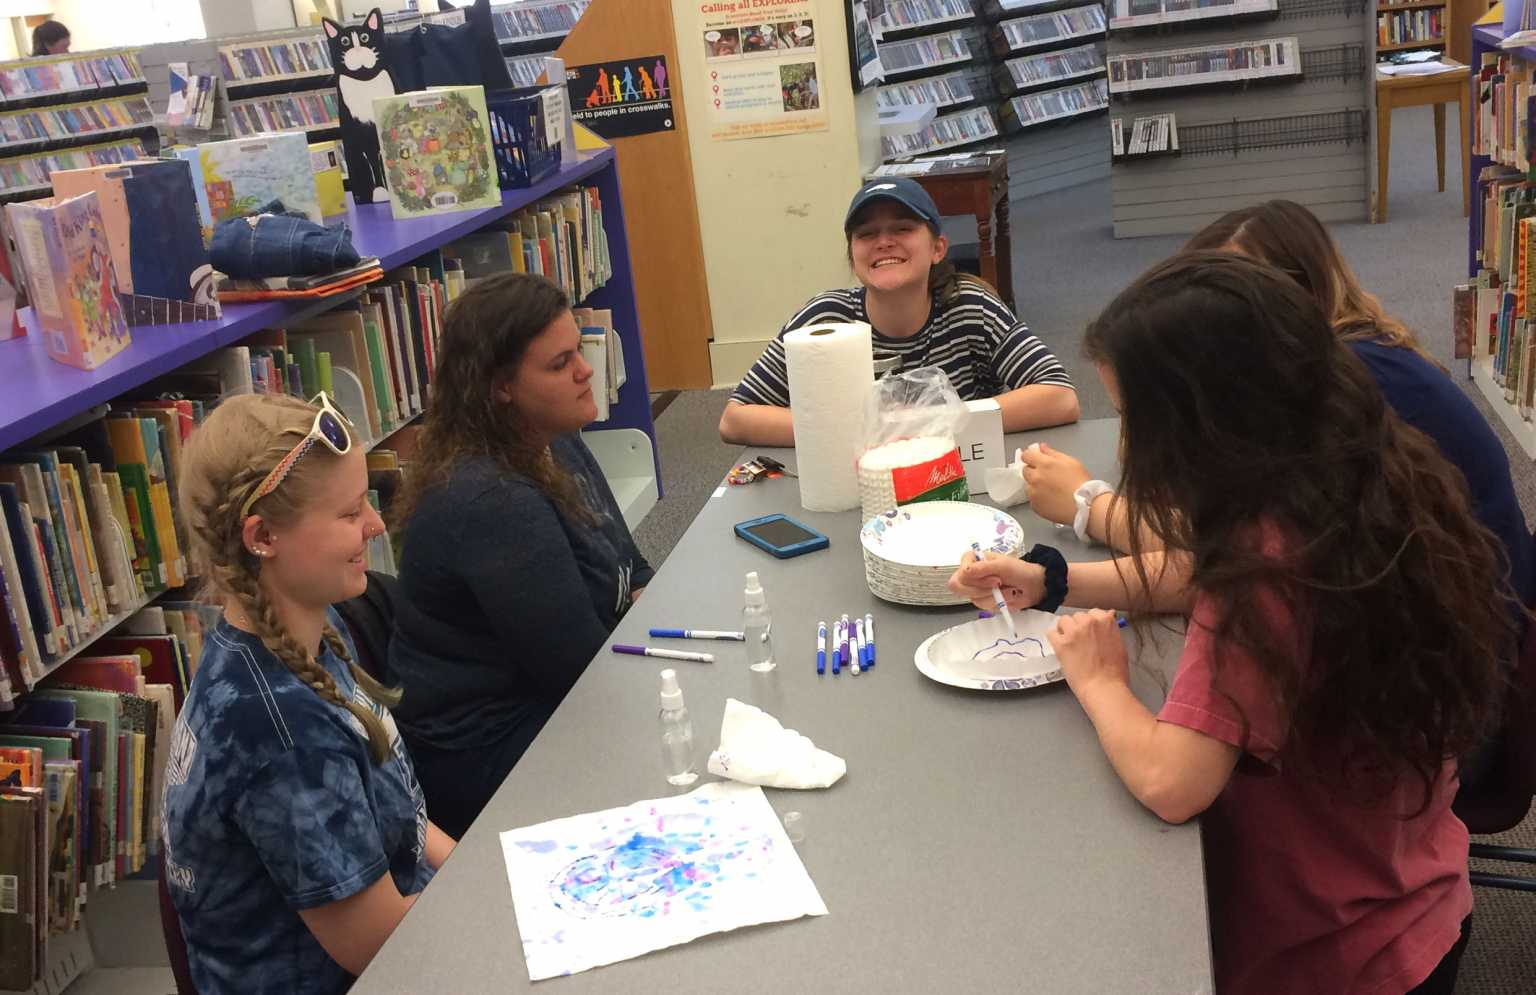 Elementary Ed. students work with young people to create environmental artwork with recycled materials at the Watauga Public Library.